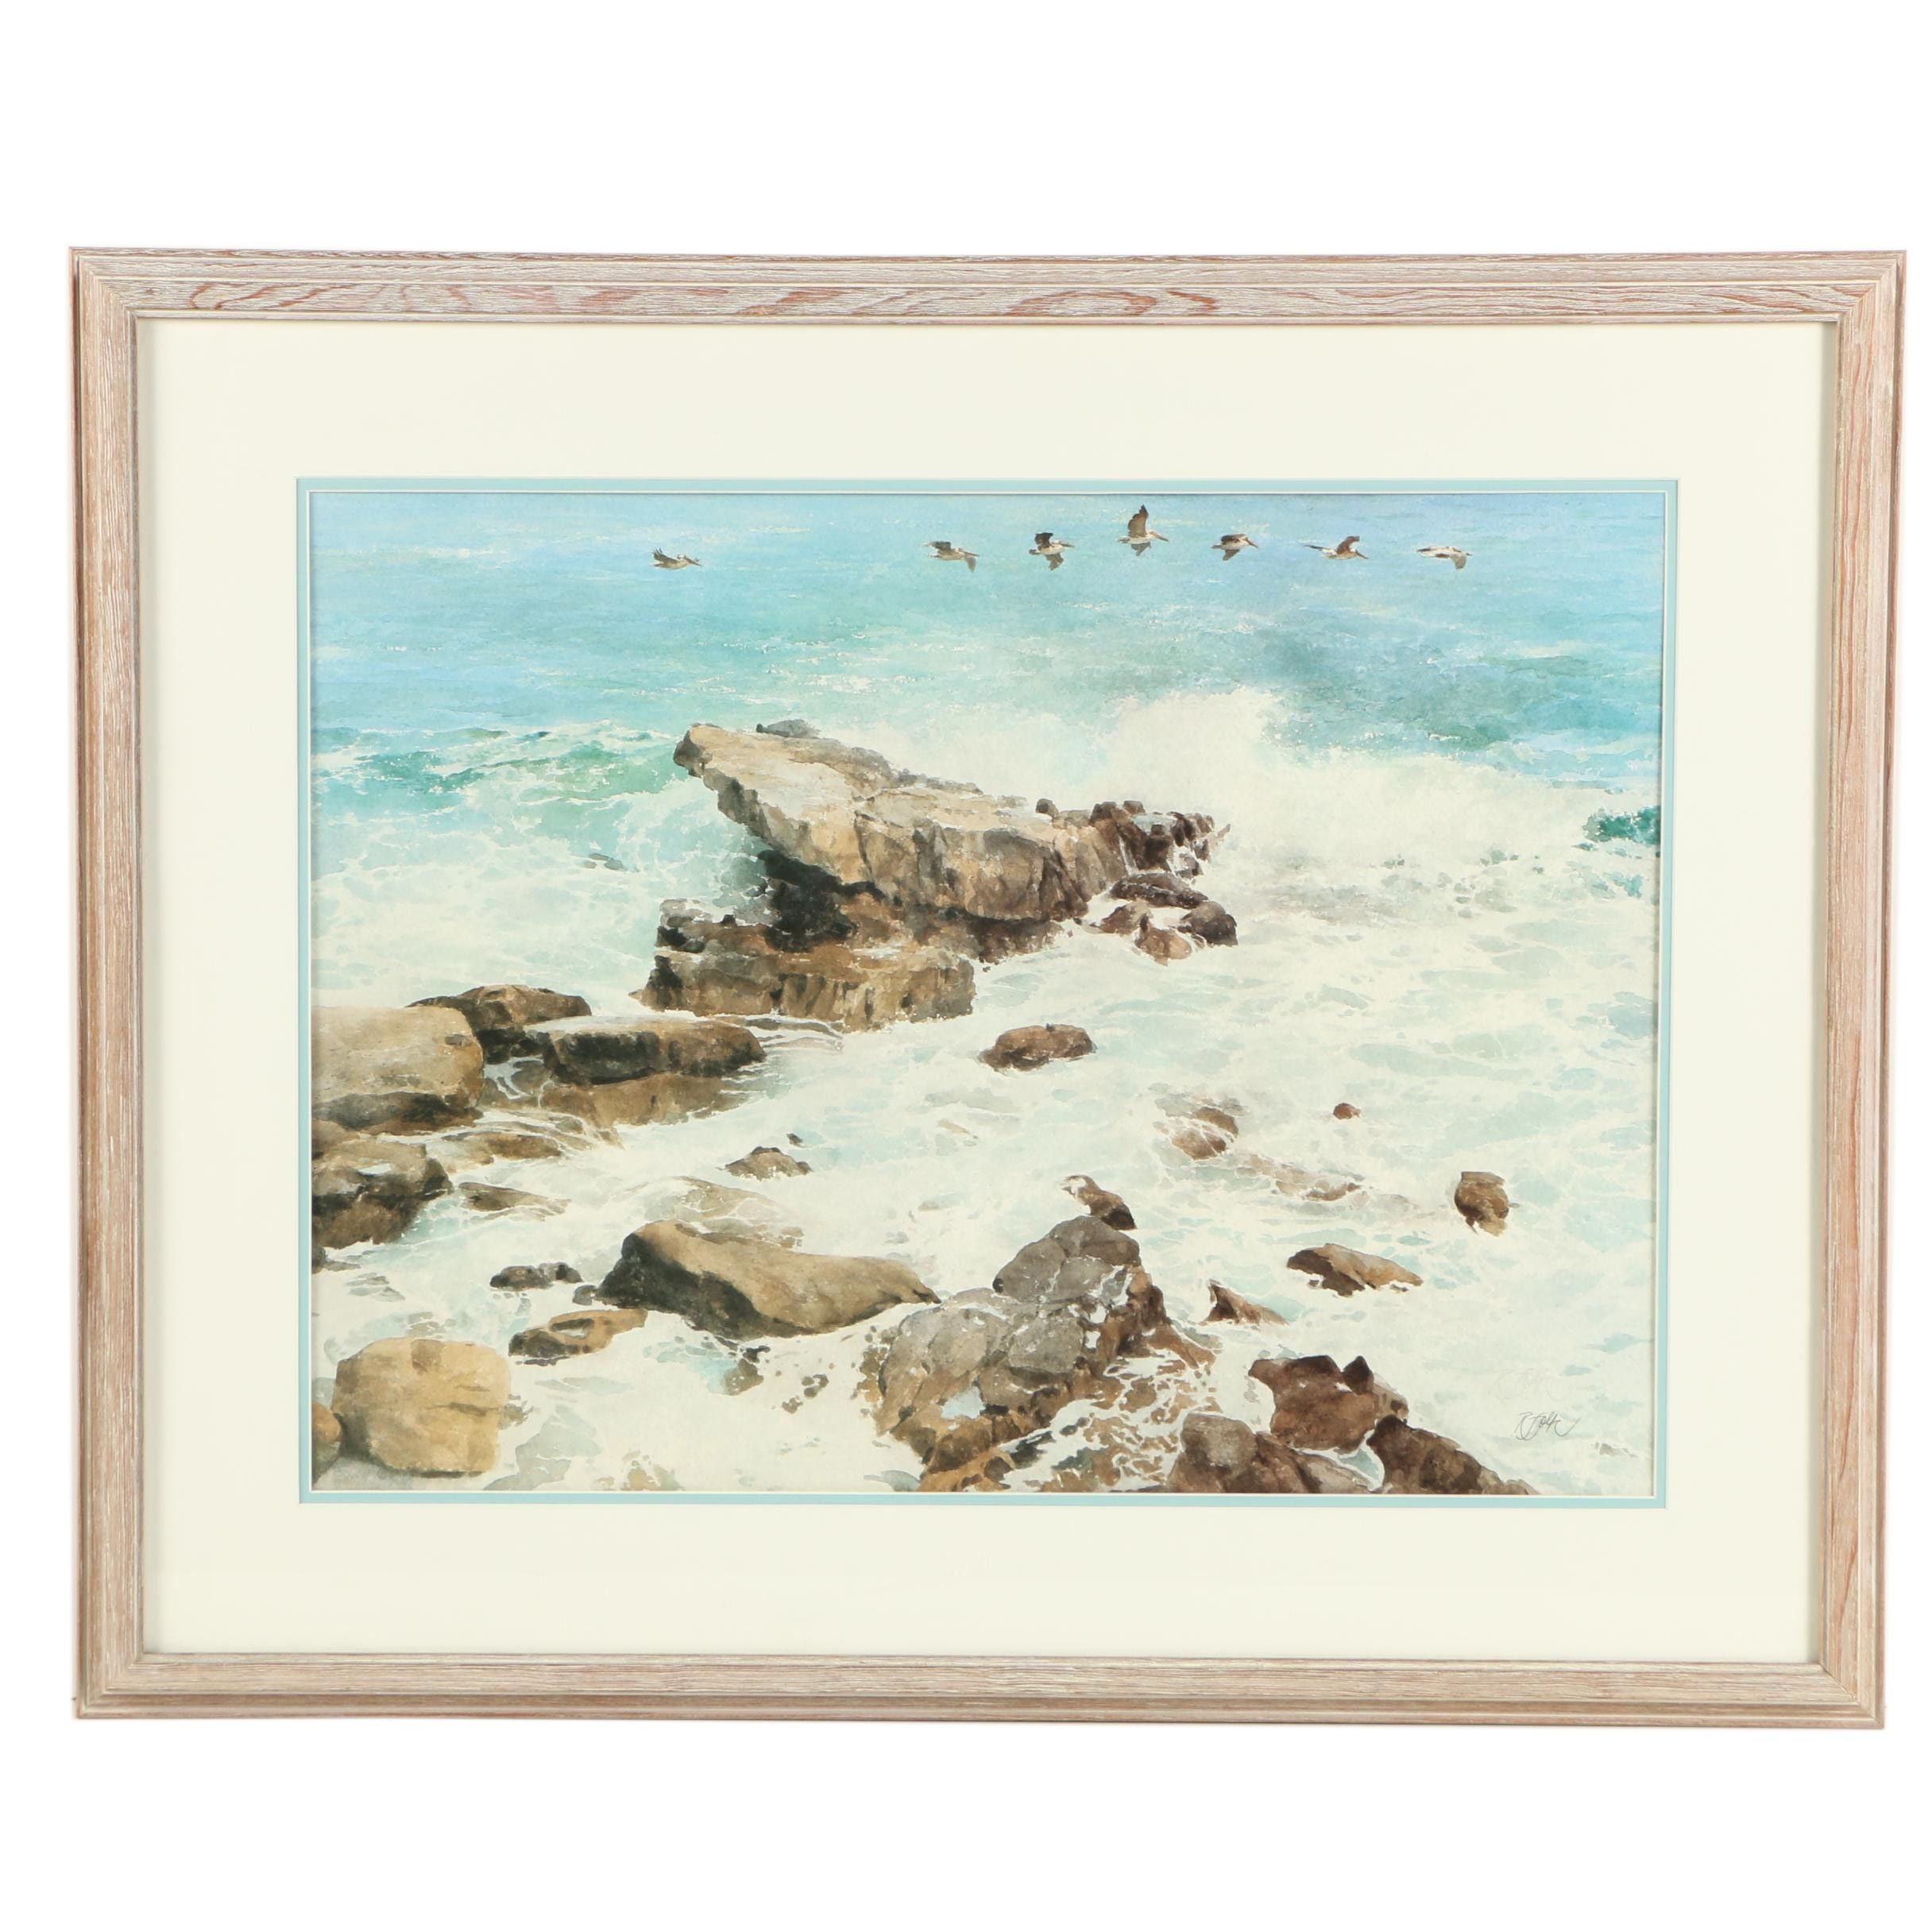 Roger Folk  Offset Lithograph of a Shoreline Landscape